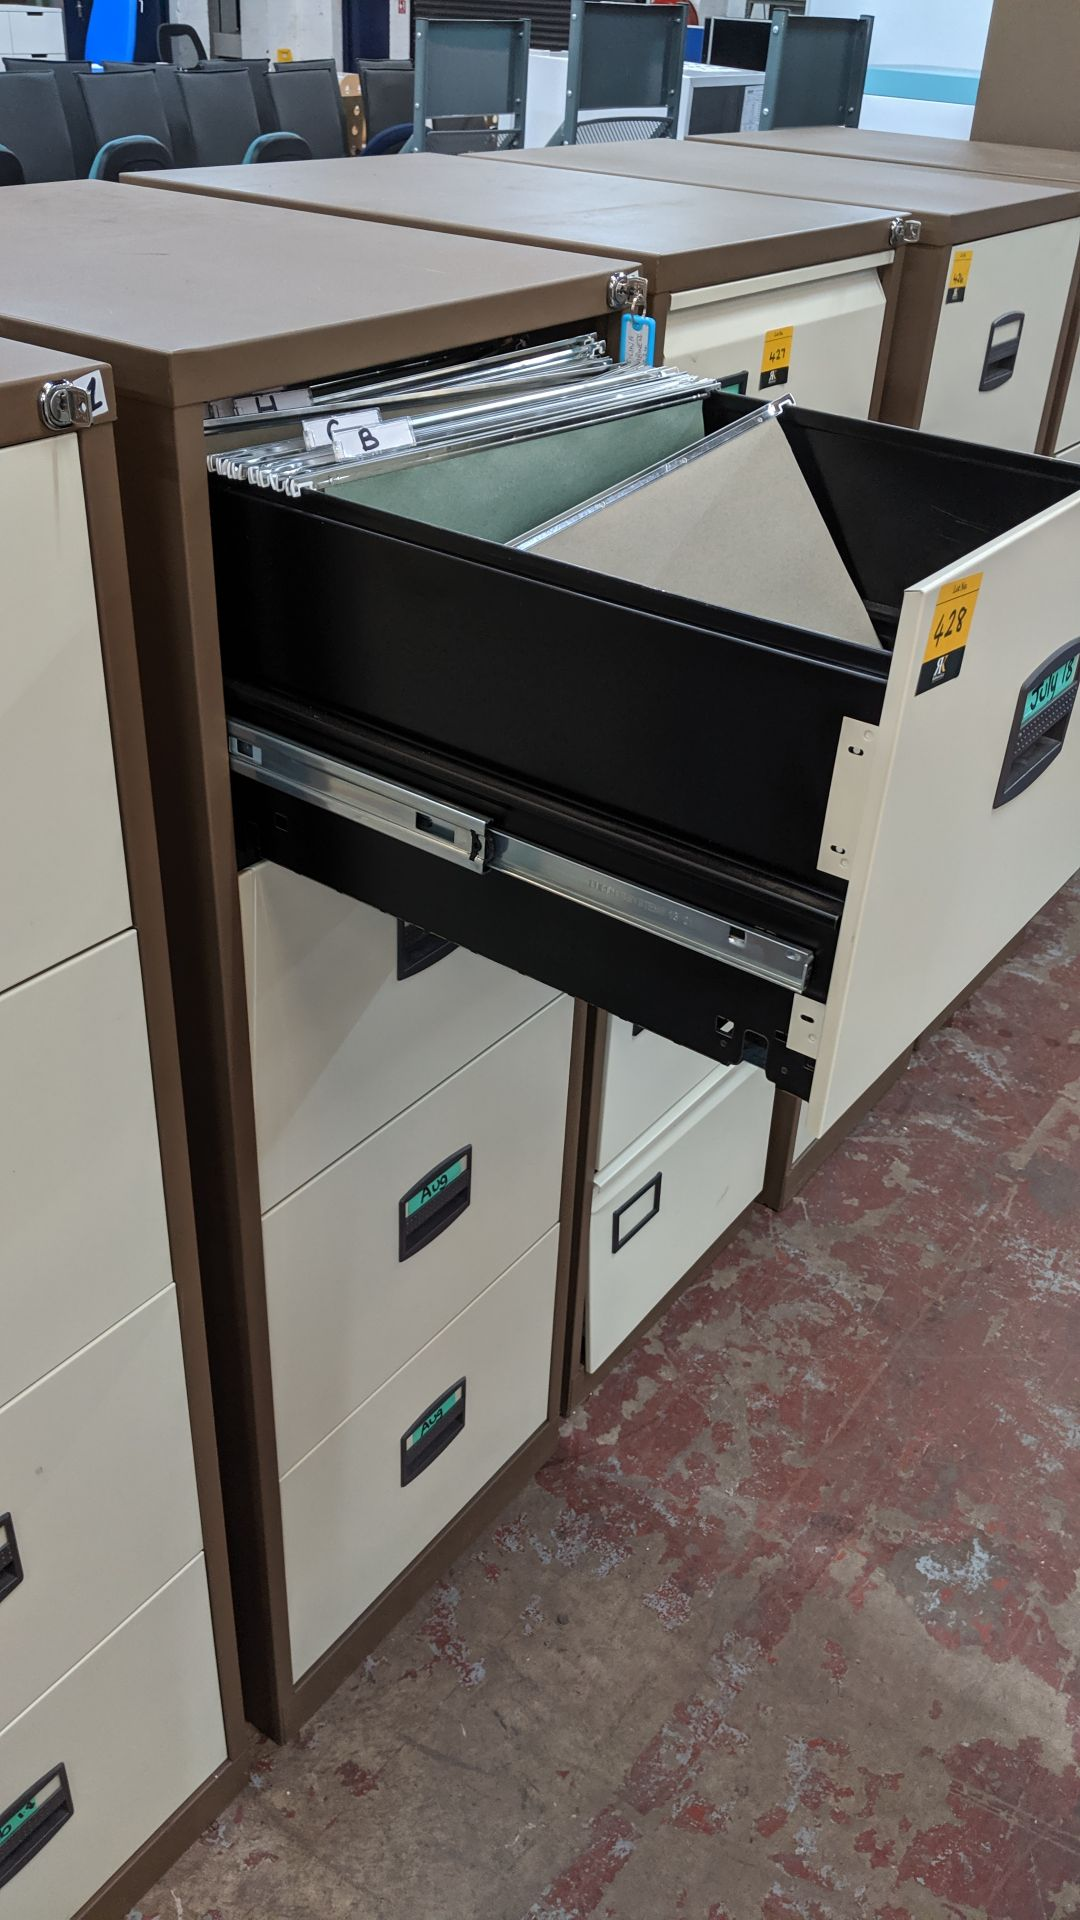 Lot 428 - Brown metal 4-drawer filing cabinet with key. This is one of a large number of lots used/owned by